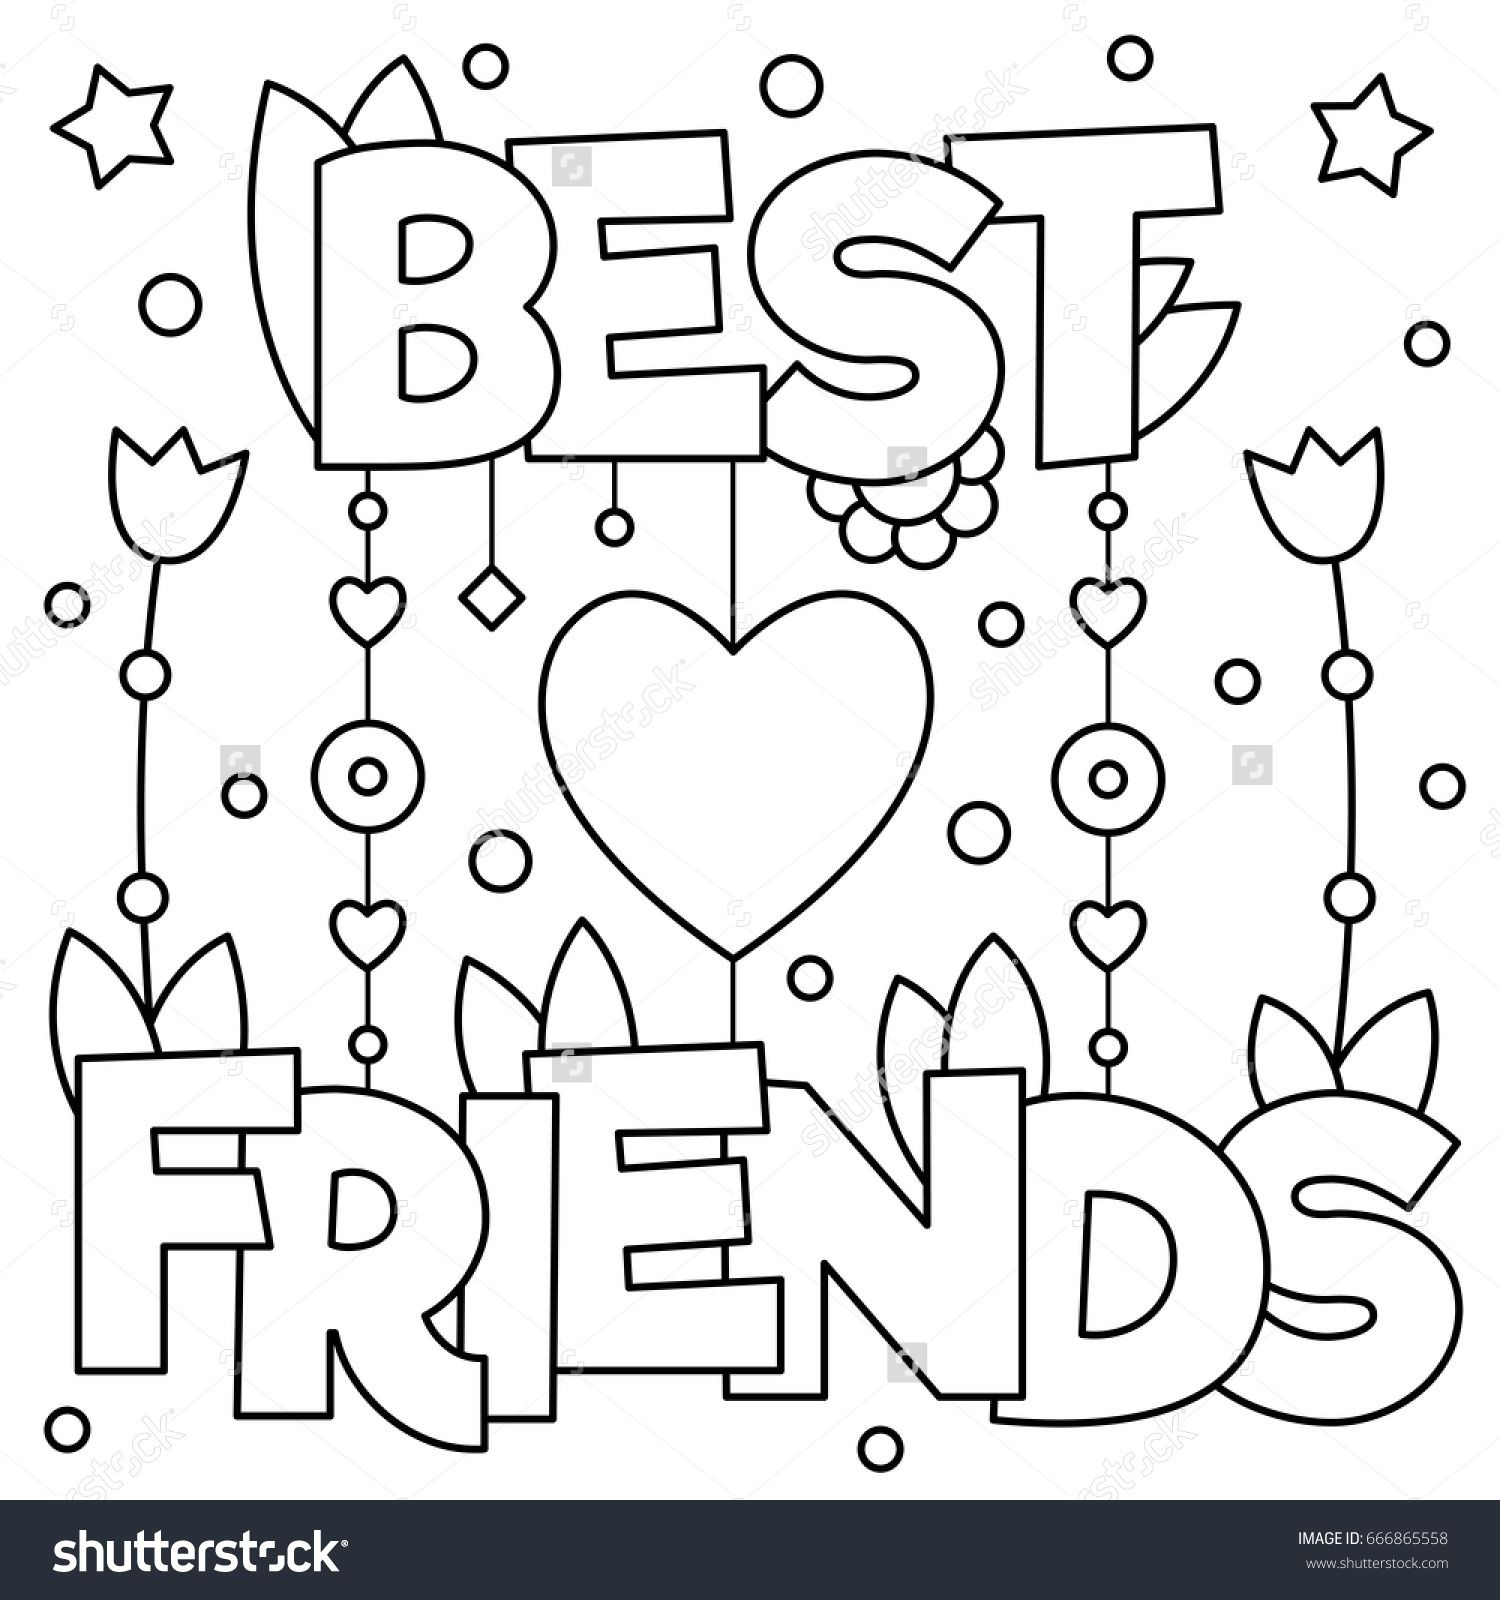 Best Friends Coloring Page Vector Illustration Valentines Day